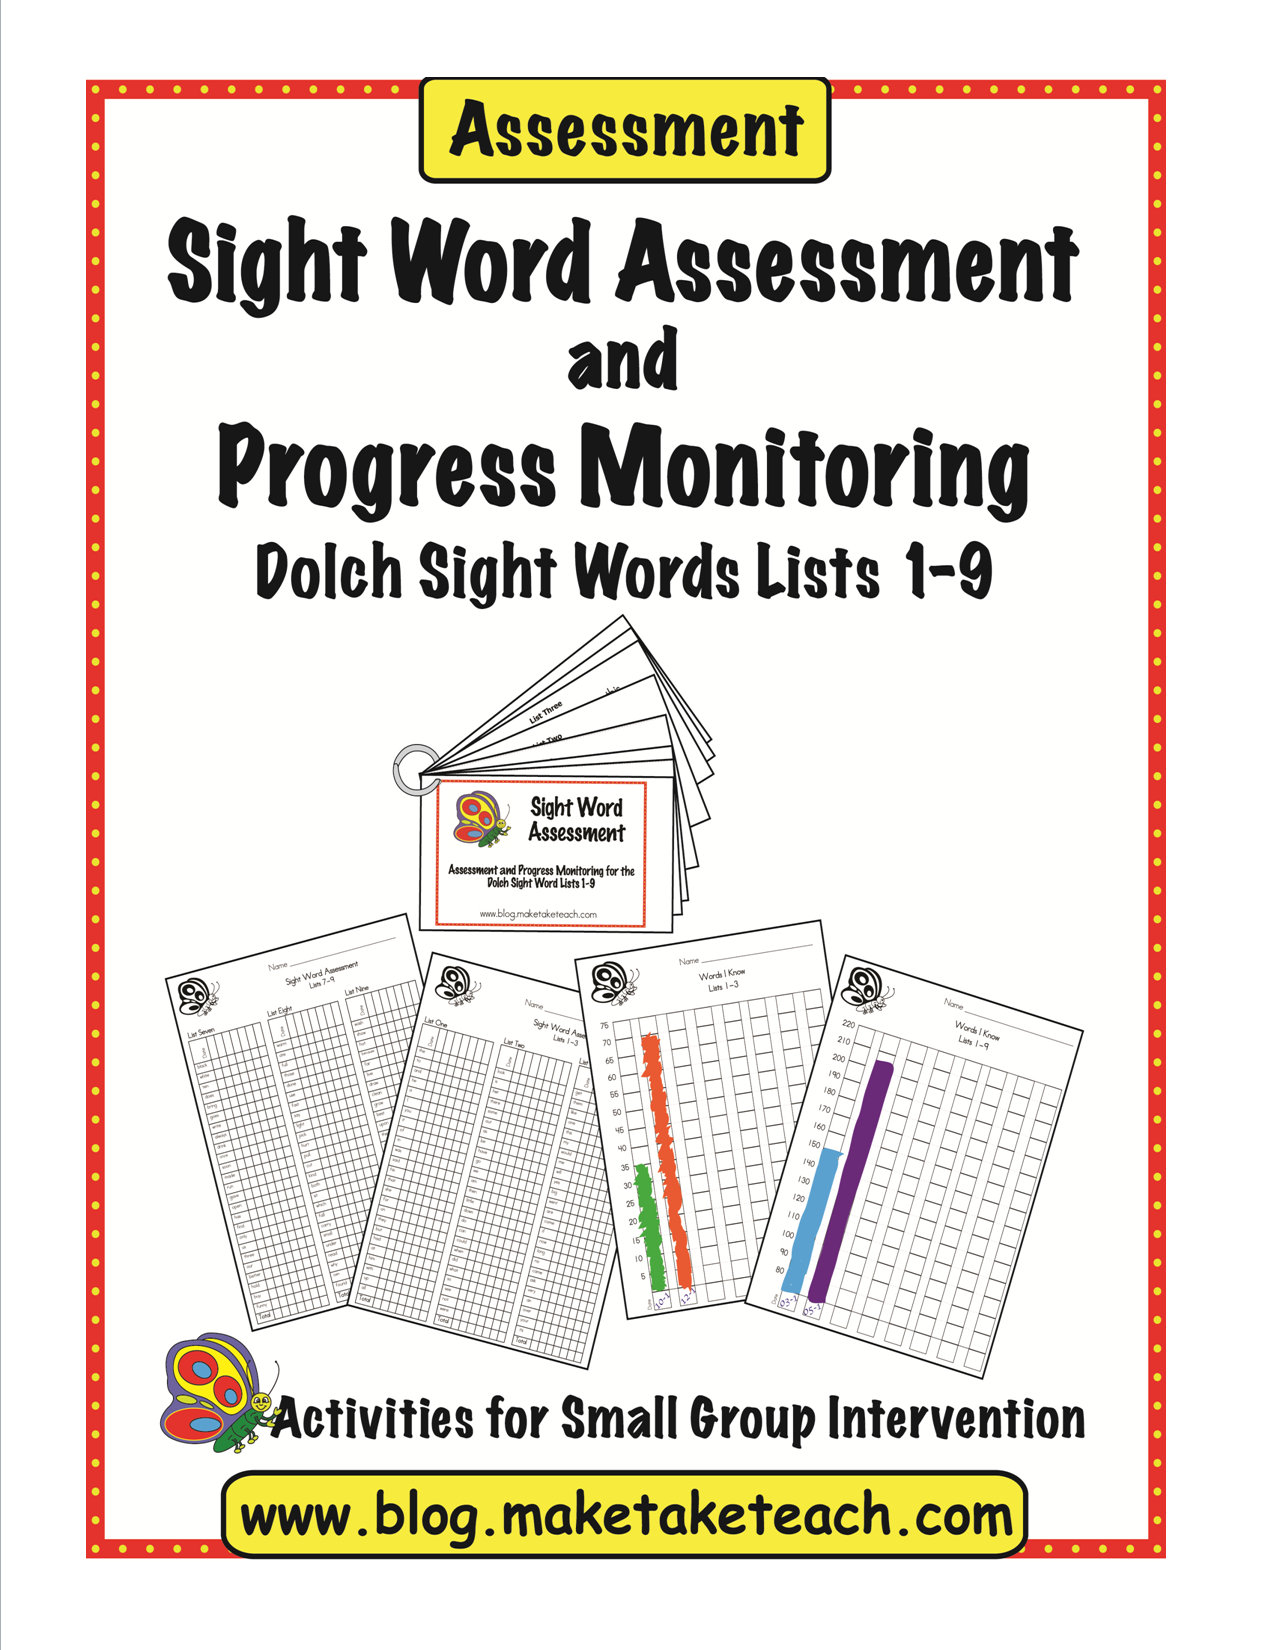 Sight Word Assessmentprevpg1